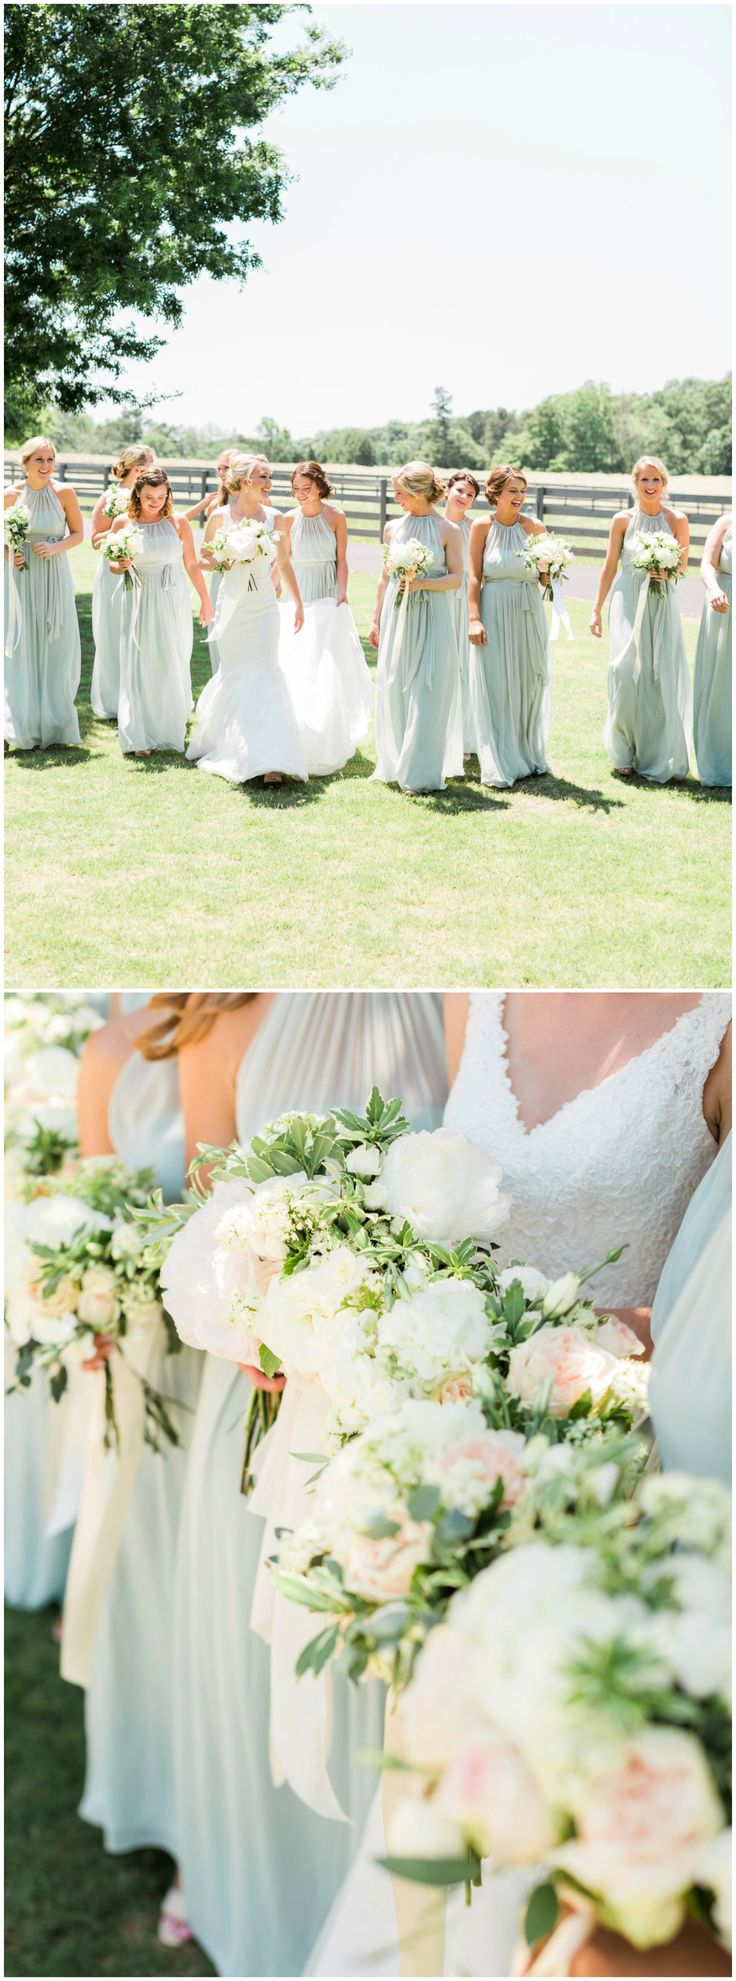 Matching long bridesmaid dresses, seafoam green bridal party, large white bouquets, springtime style // Rustic White Photography